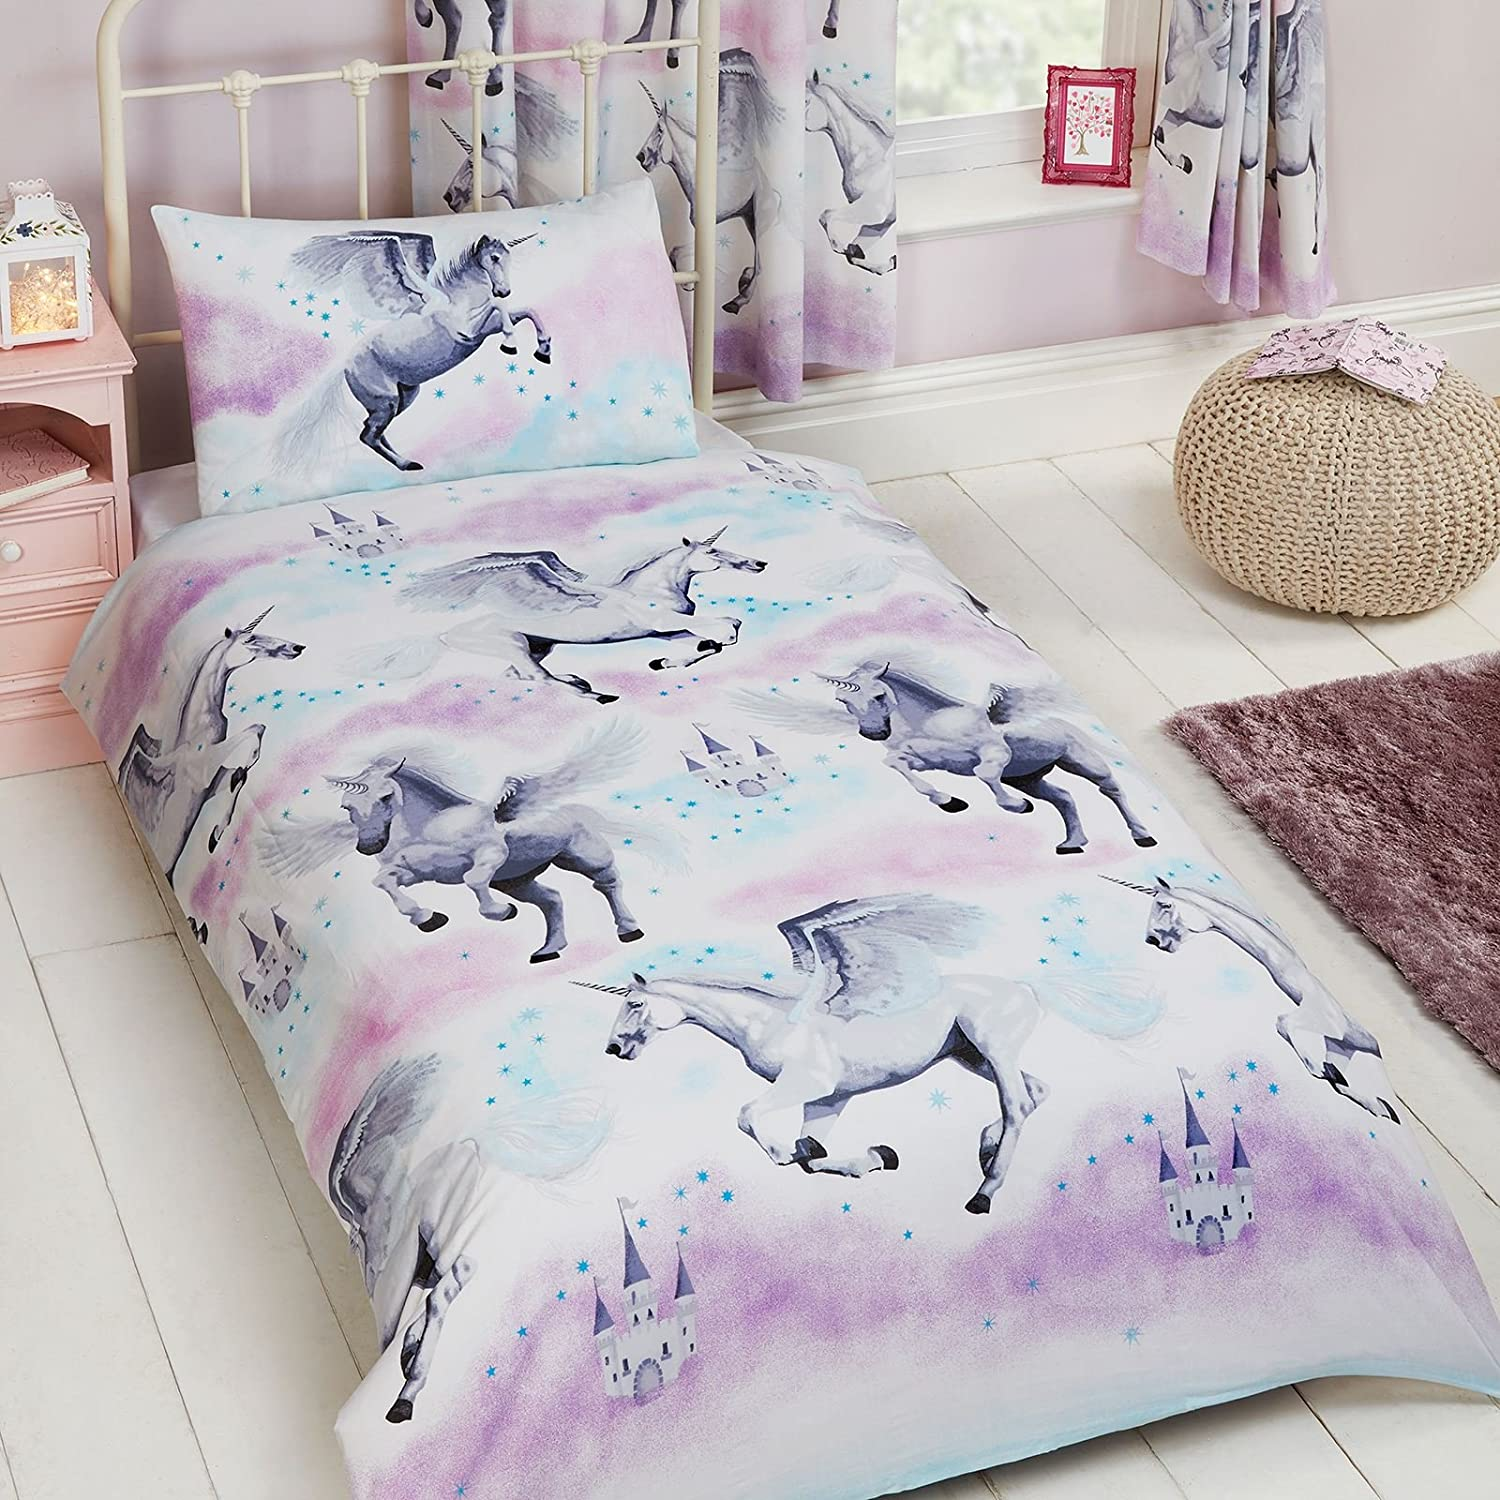 Price Right Home Stardust Unicorn Teal/Purple Junior Duvet Cover and Pillowcase Set + Matching Curtains Fully Lined 66x72 with Tie Backs Rapport